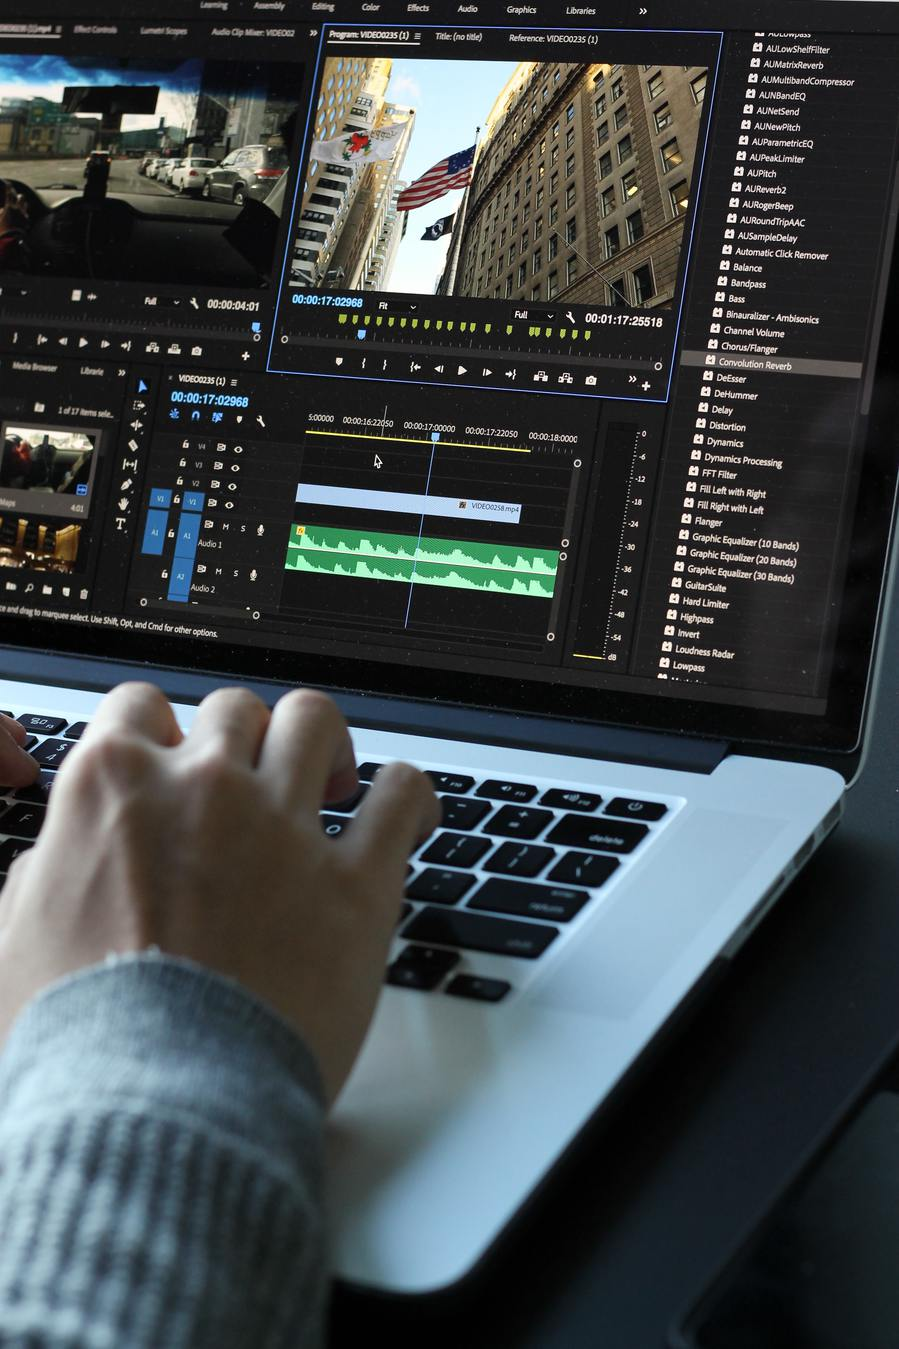 Persoon editing video